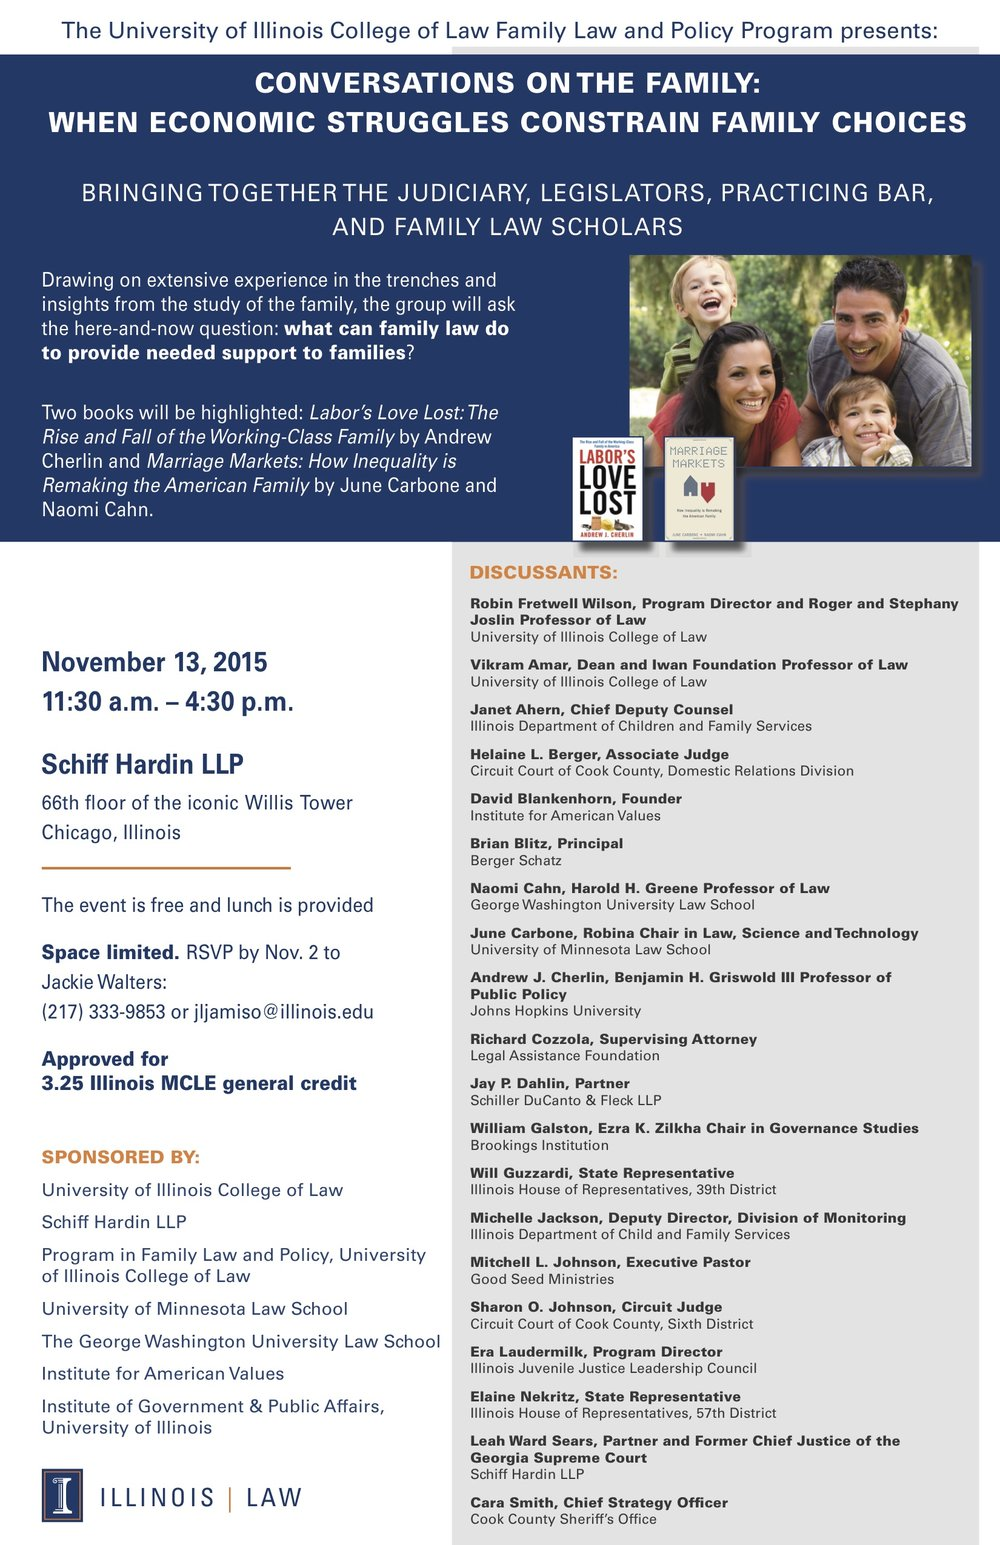 Fam Law - Conversations on the Family Conference FINAL 10.27.15.jpg